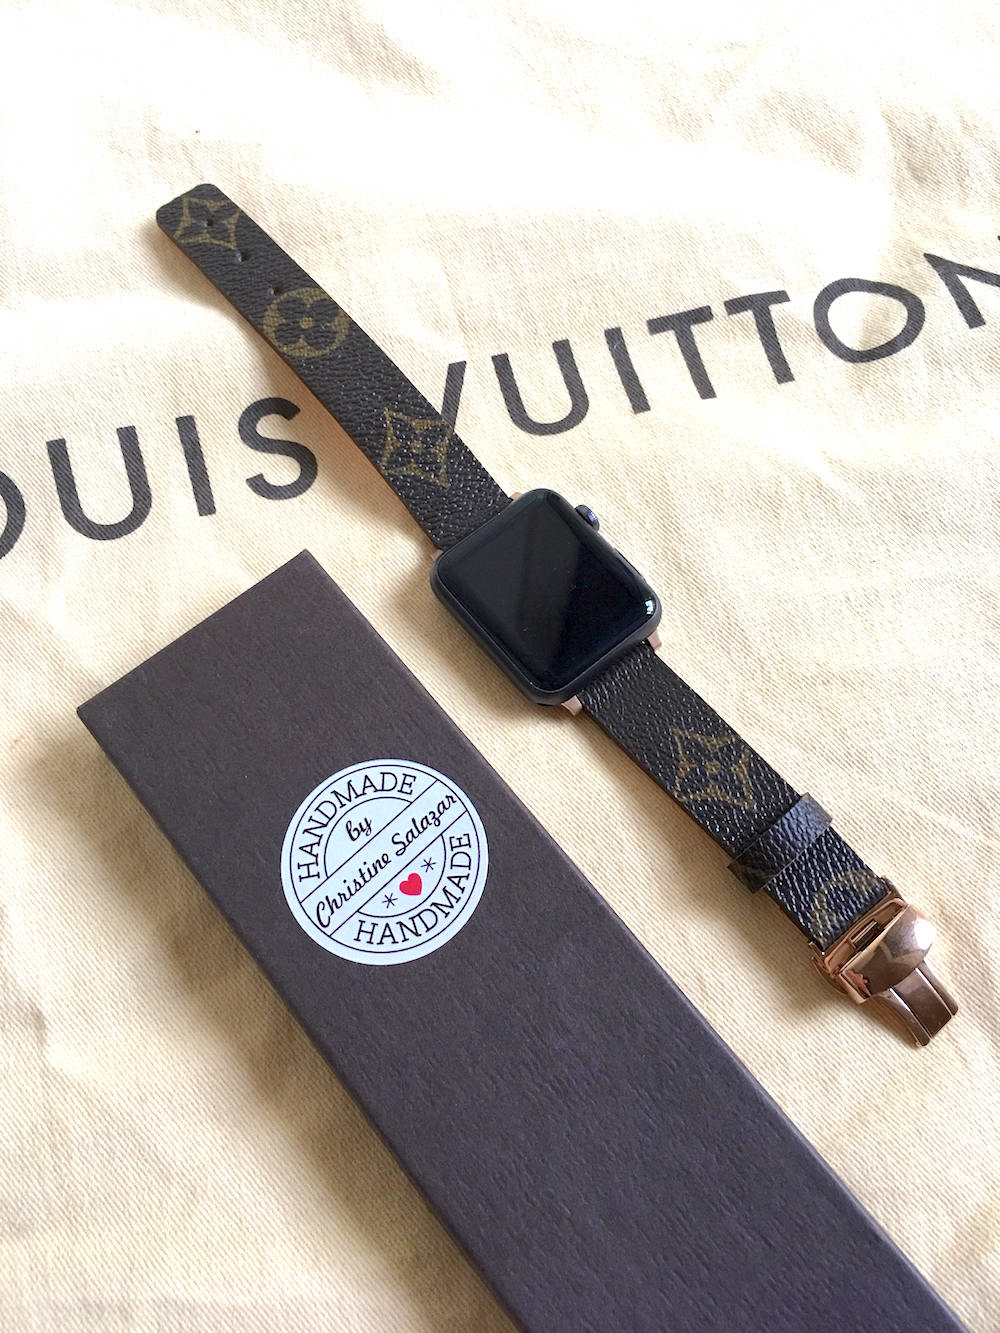 Best Apple Watch accessories: Authentic, custom Louis Vuitton bands at CC Luxe on Etsy | Holiday Tech Guide 2017